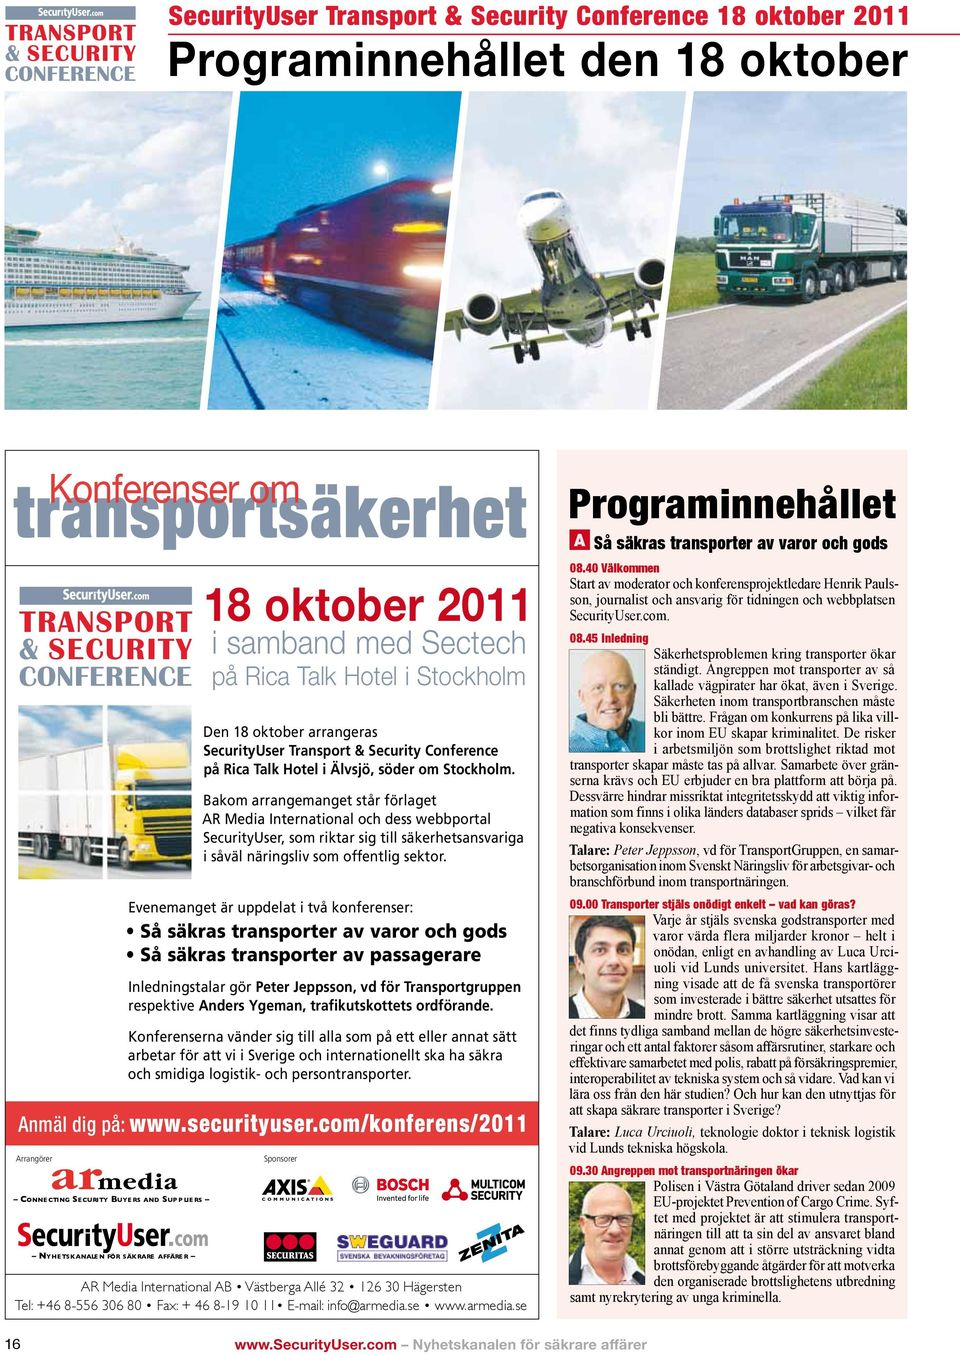 oktober arrangeras SecurityUser Transport & Security Conference på Rica Talk Hotel i Älvsjö, söder om Stockholm.